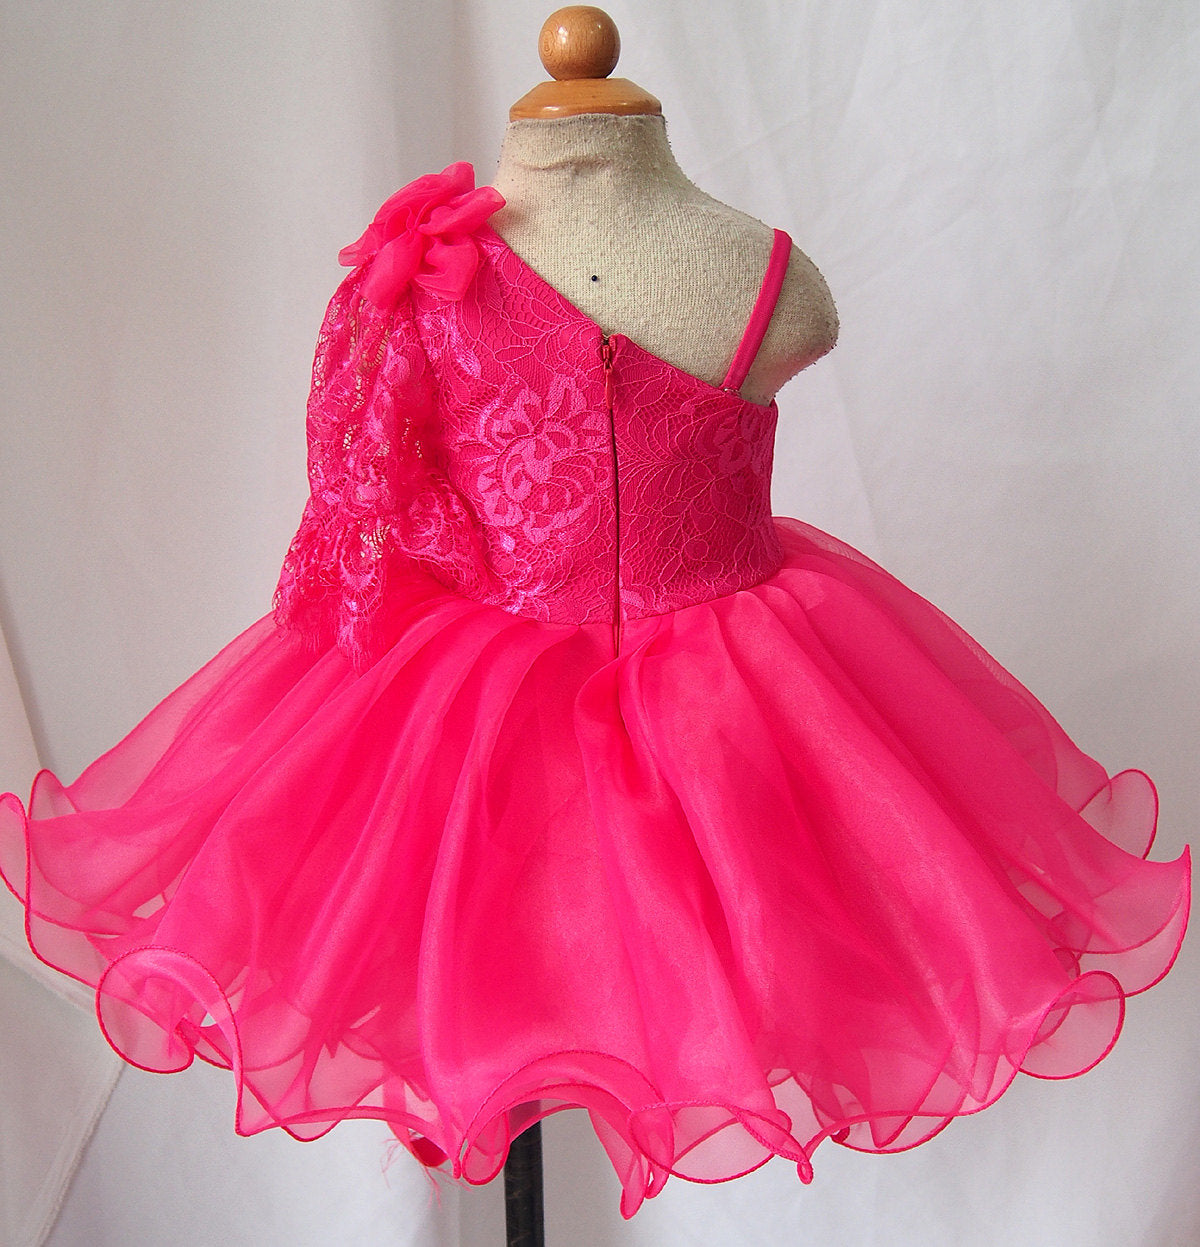 Infant//toddler//baby Lace Halter Pageant Dress G099-5  from new born to size5T